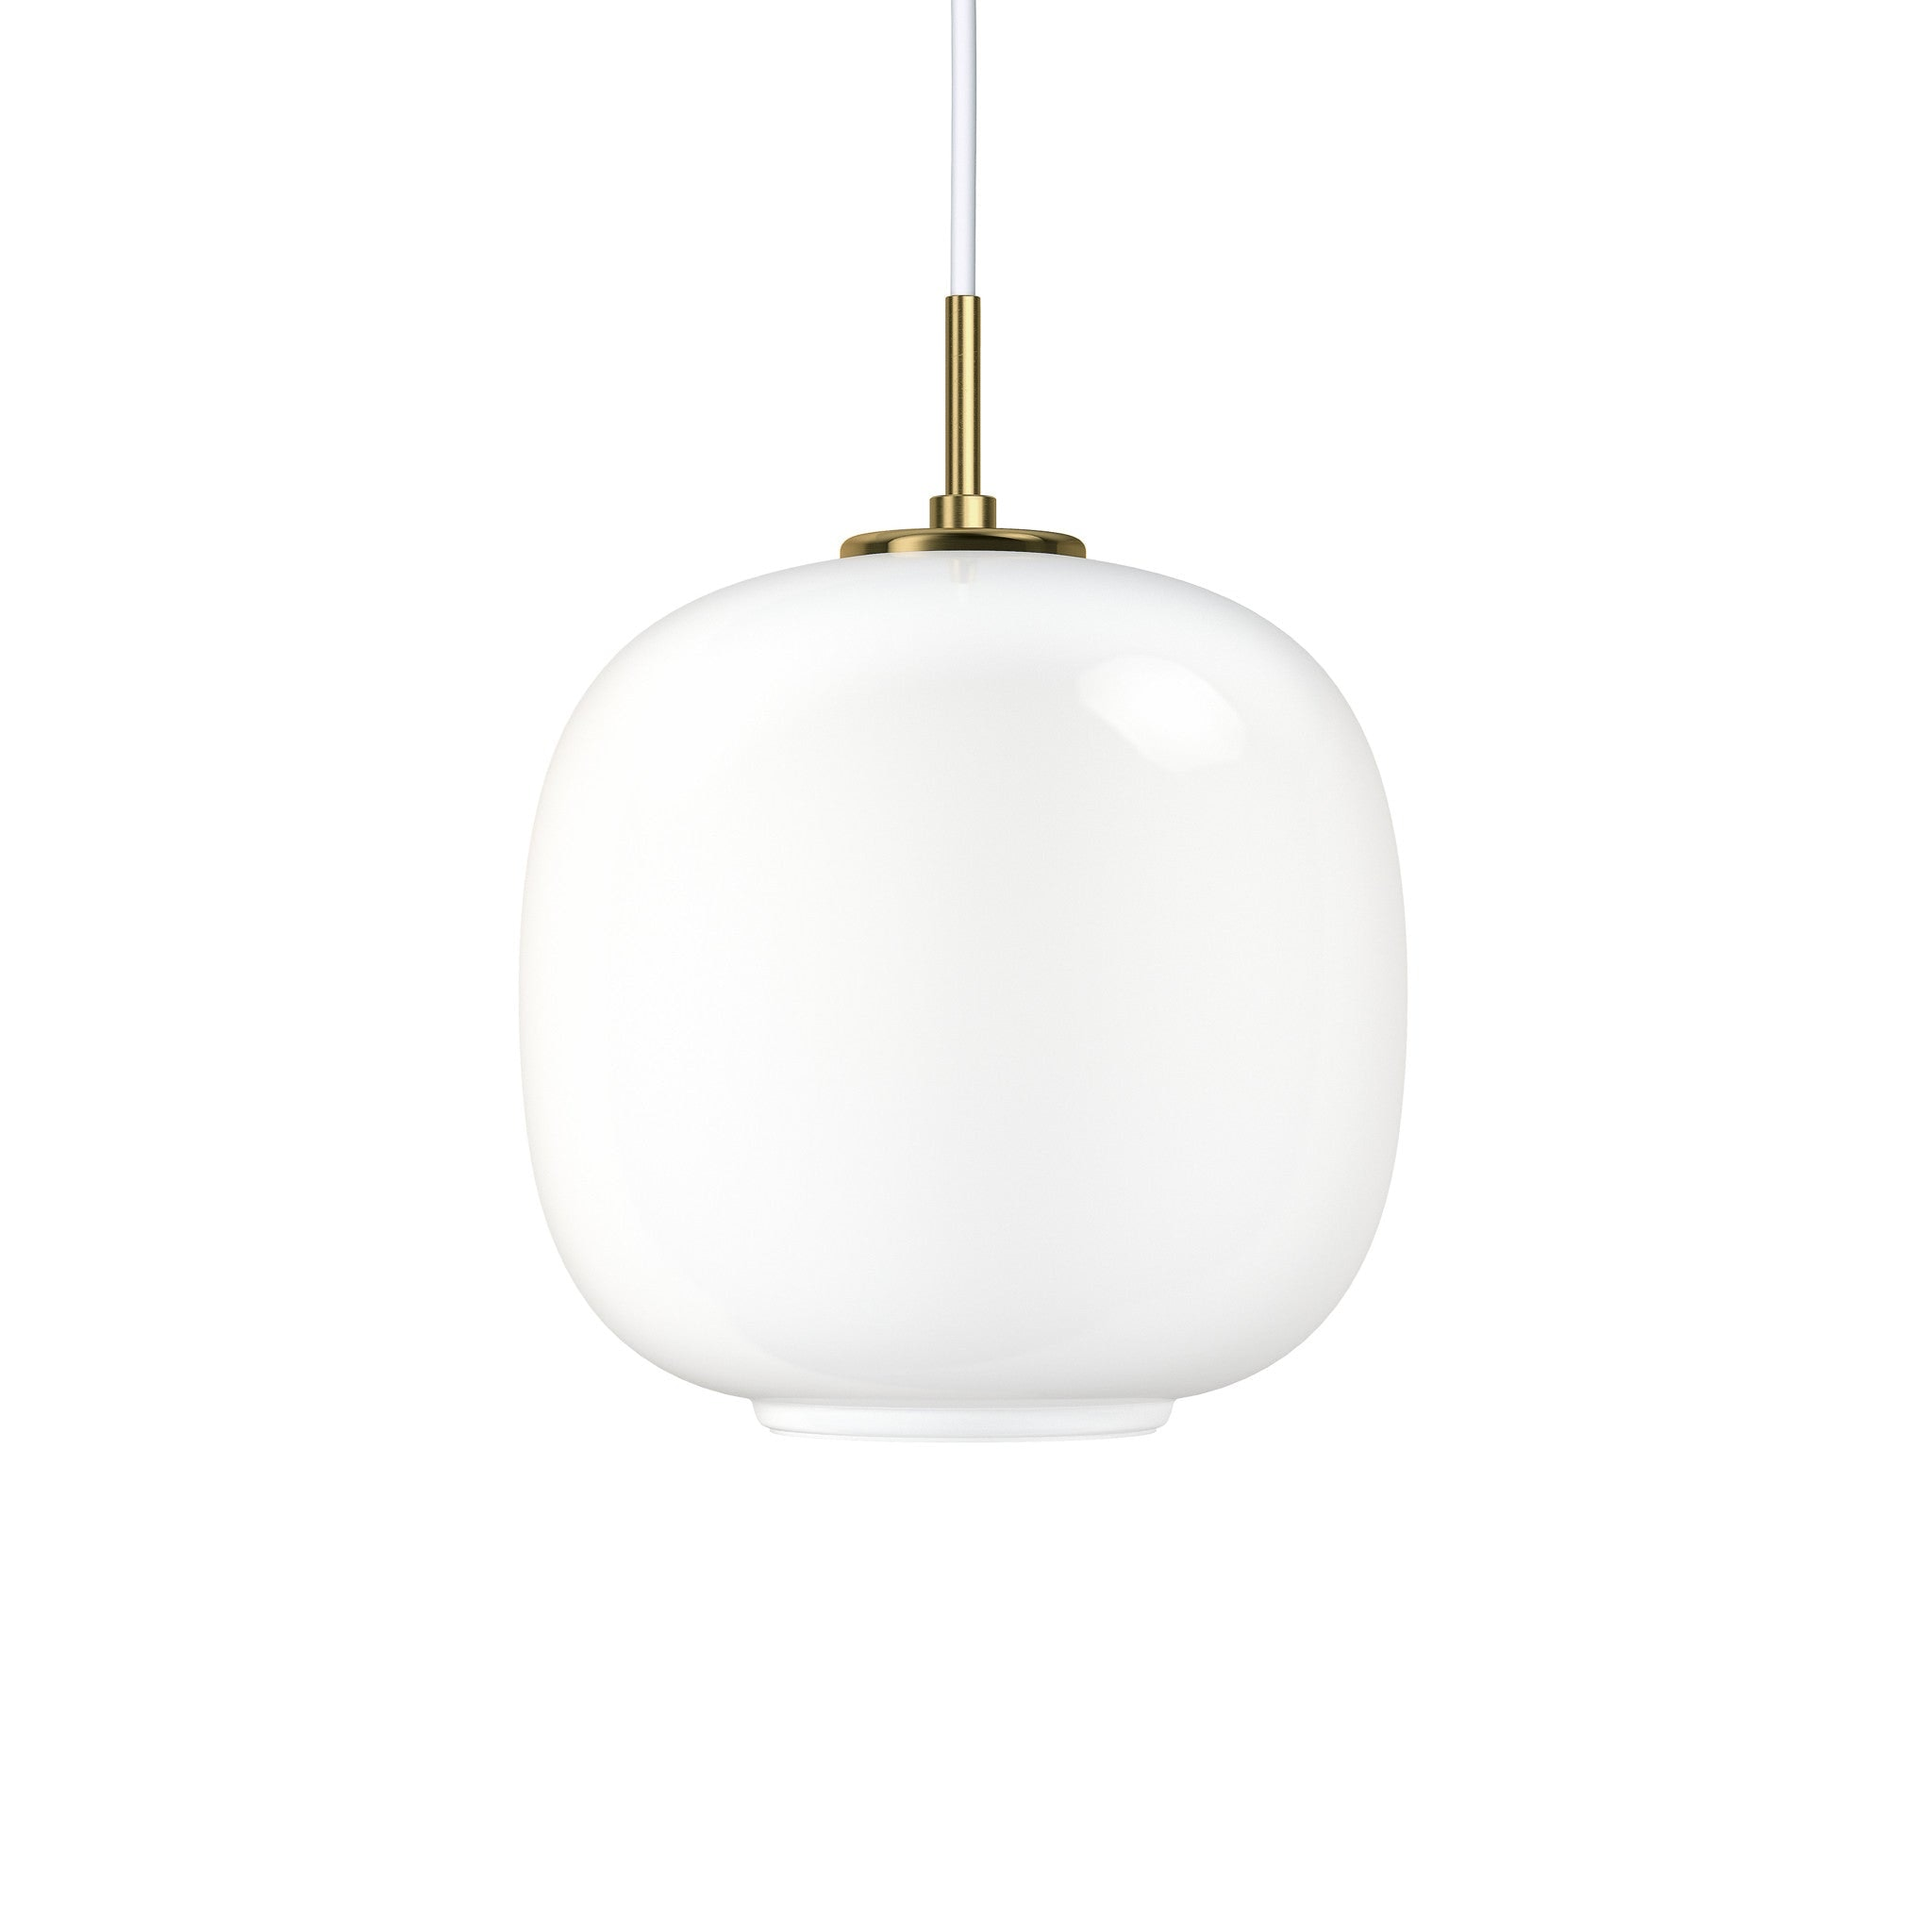 VL45 Radiohus Pendant Light by Louis Poulsen